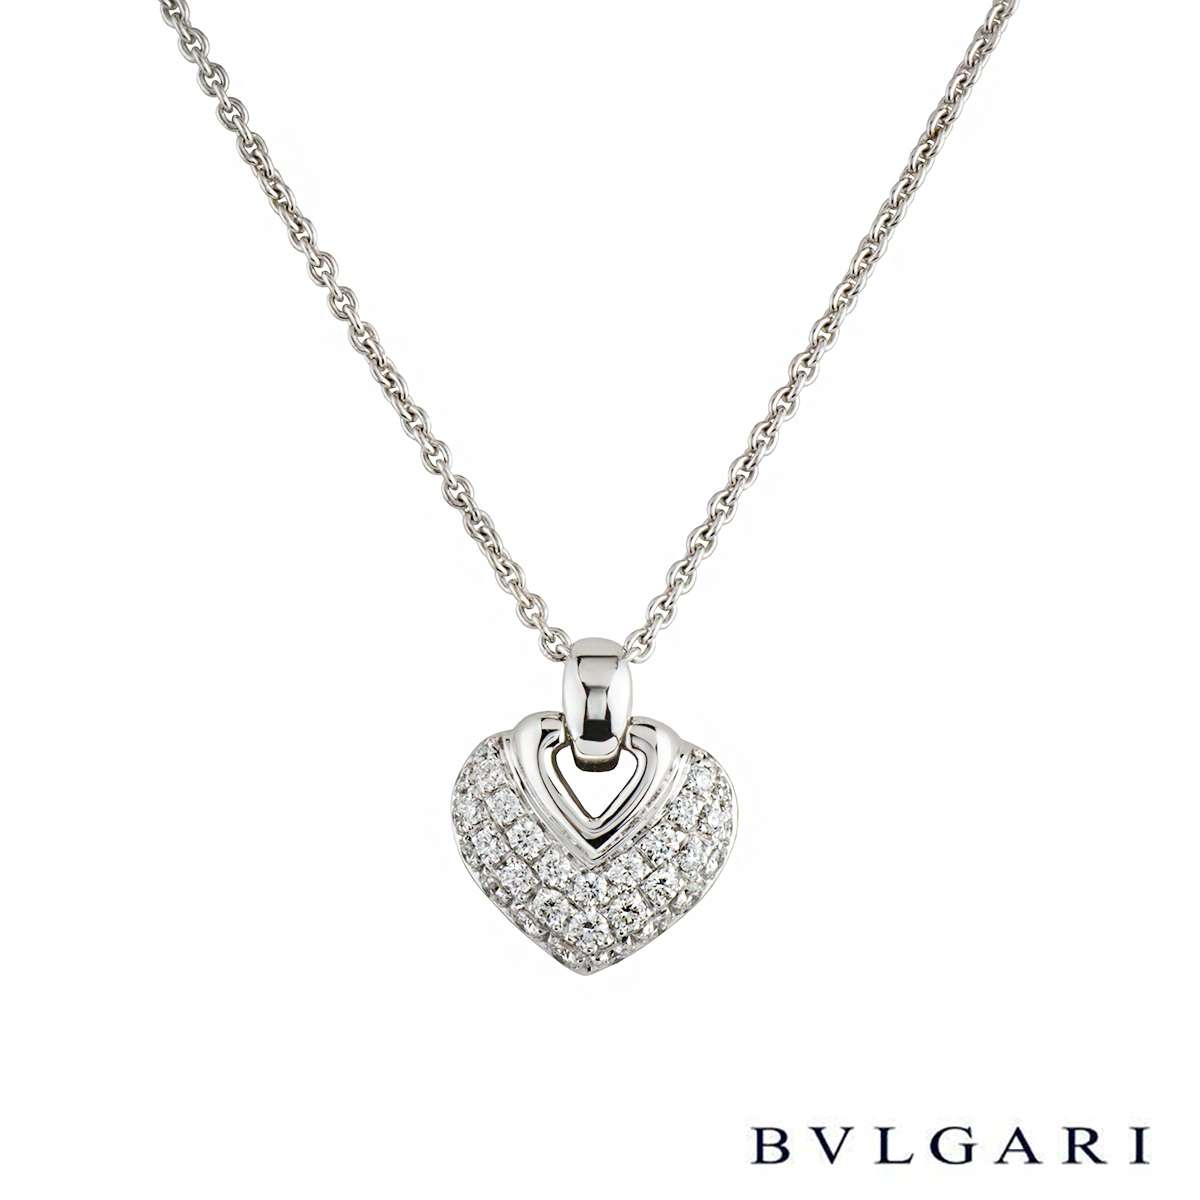 Bvlgari 18k White Gold Diamond Set Doppio Cuore Heart Pendant 1.21ct